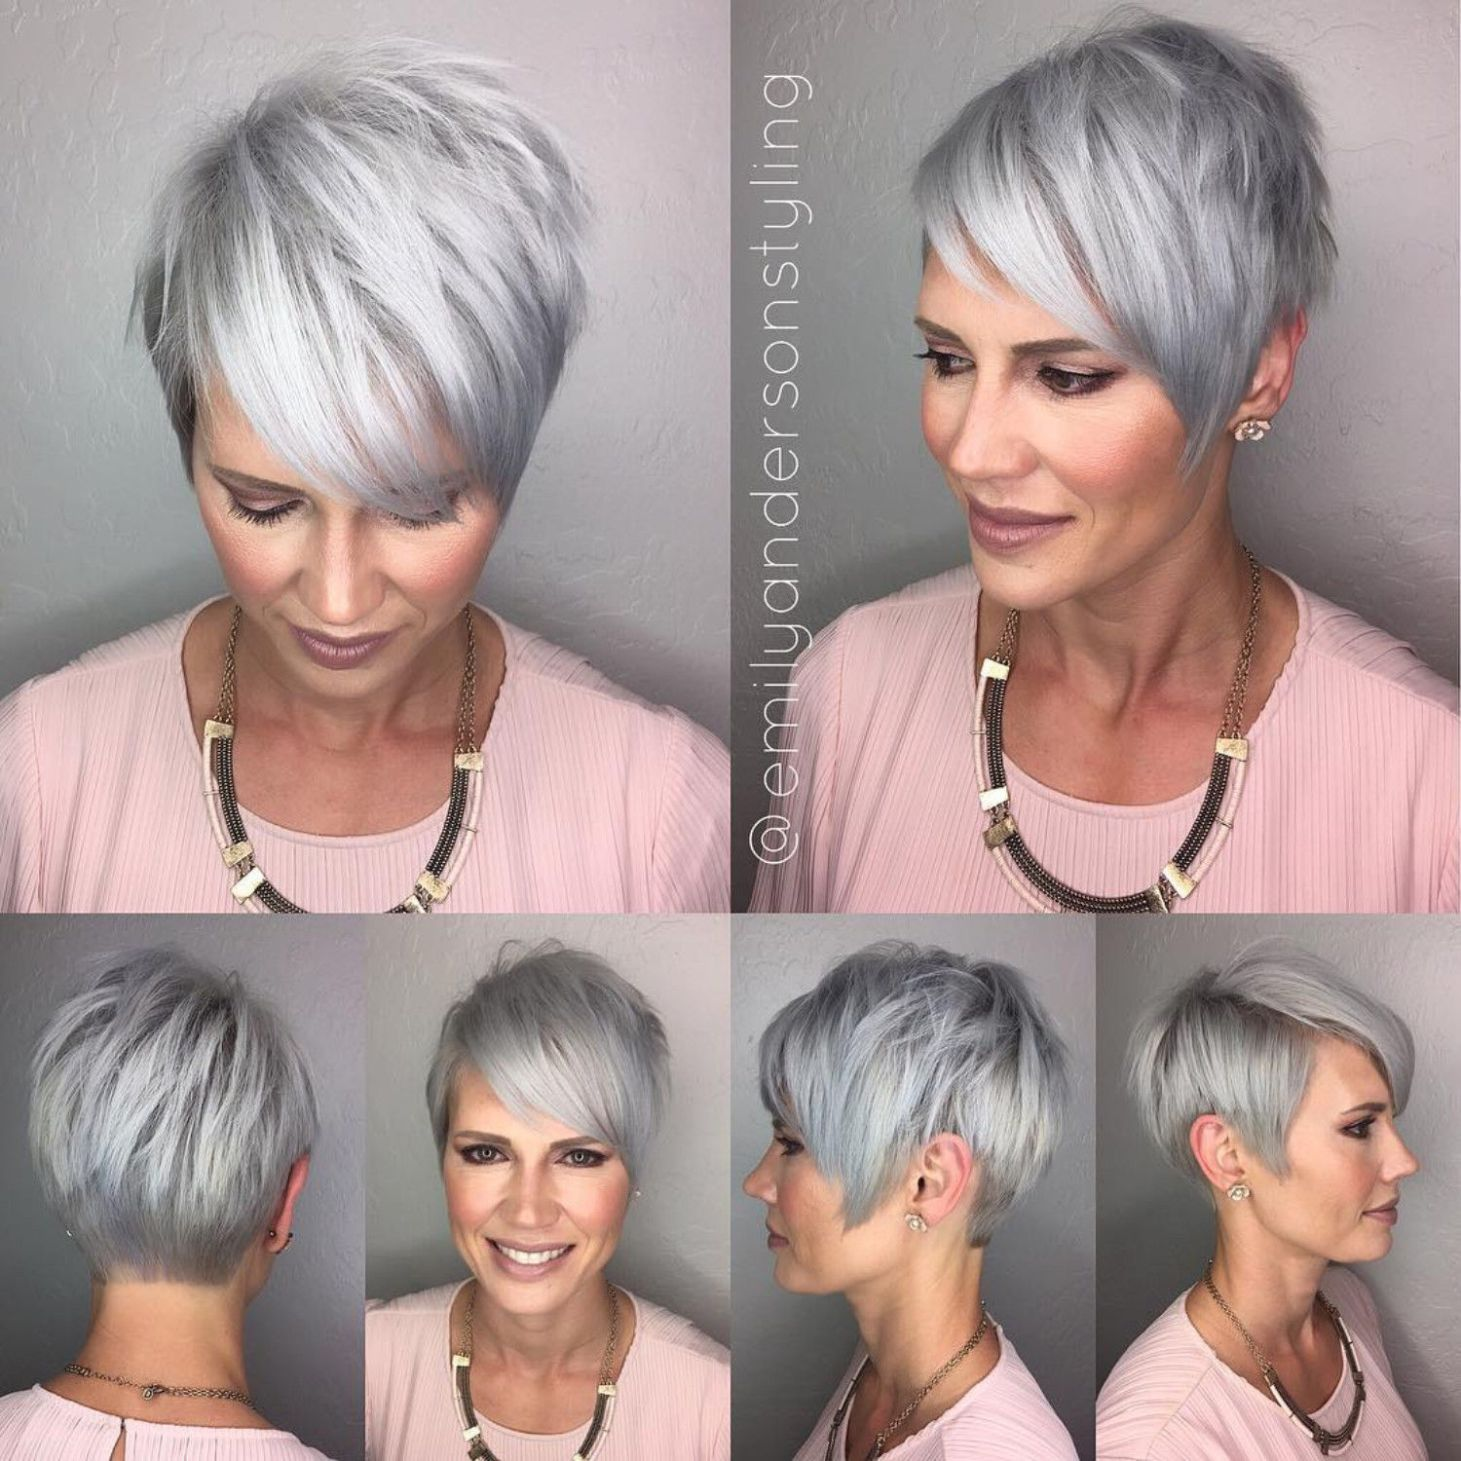 Choppy Gray Pixie With Side Bangs In 2021 Kapsels Voor Kort Haar Kort Haar Kapsels Kapsels